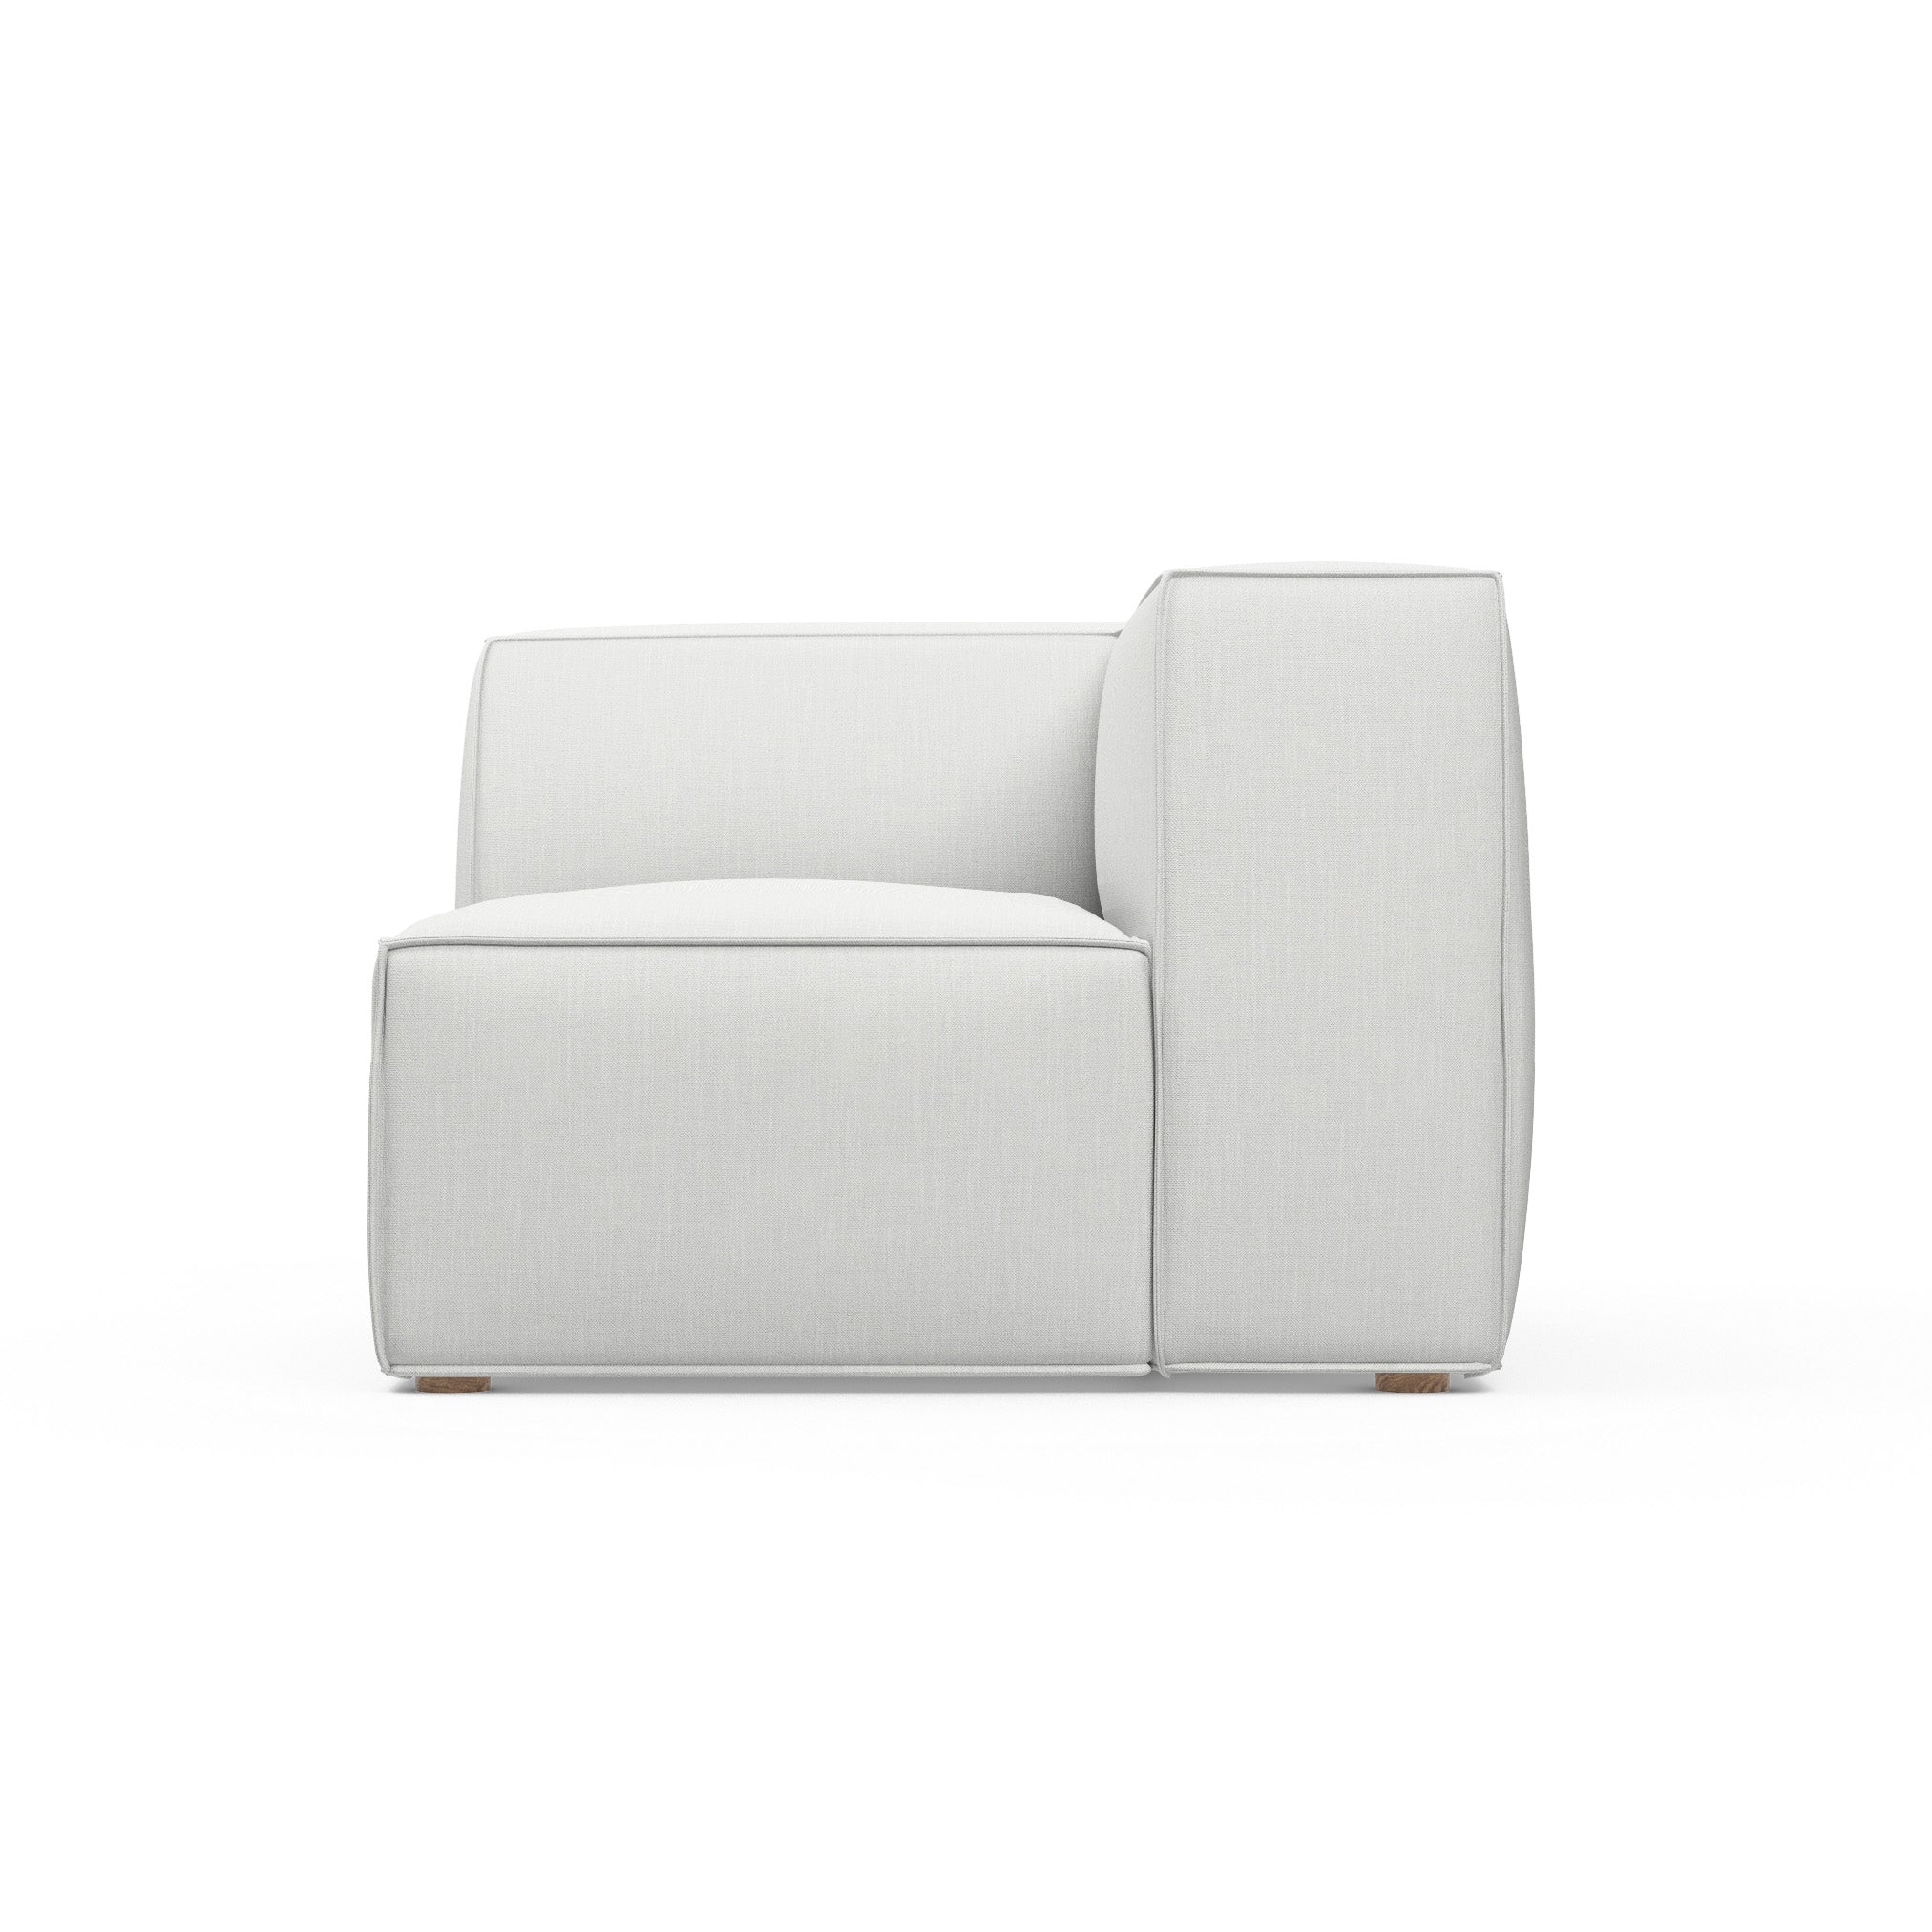 Varick Corner Chair - Blanc Box Weave Linen